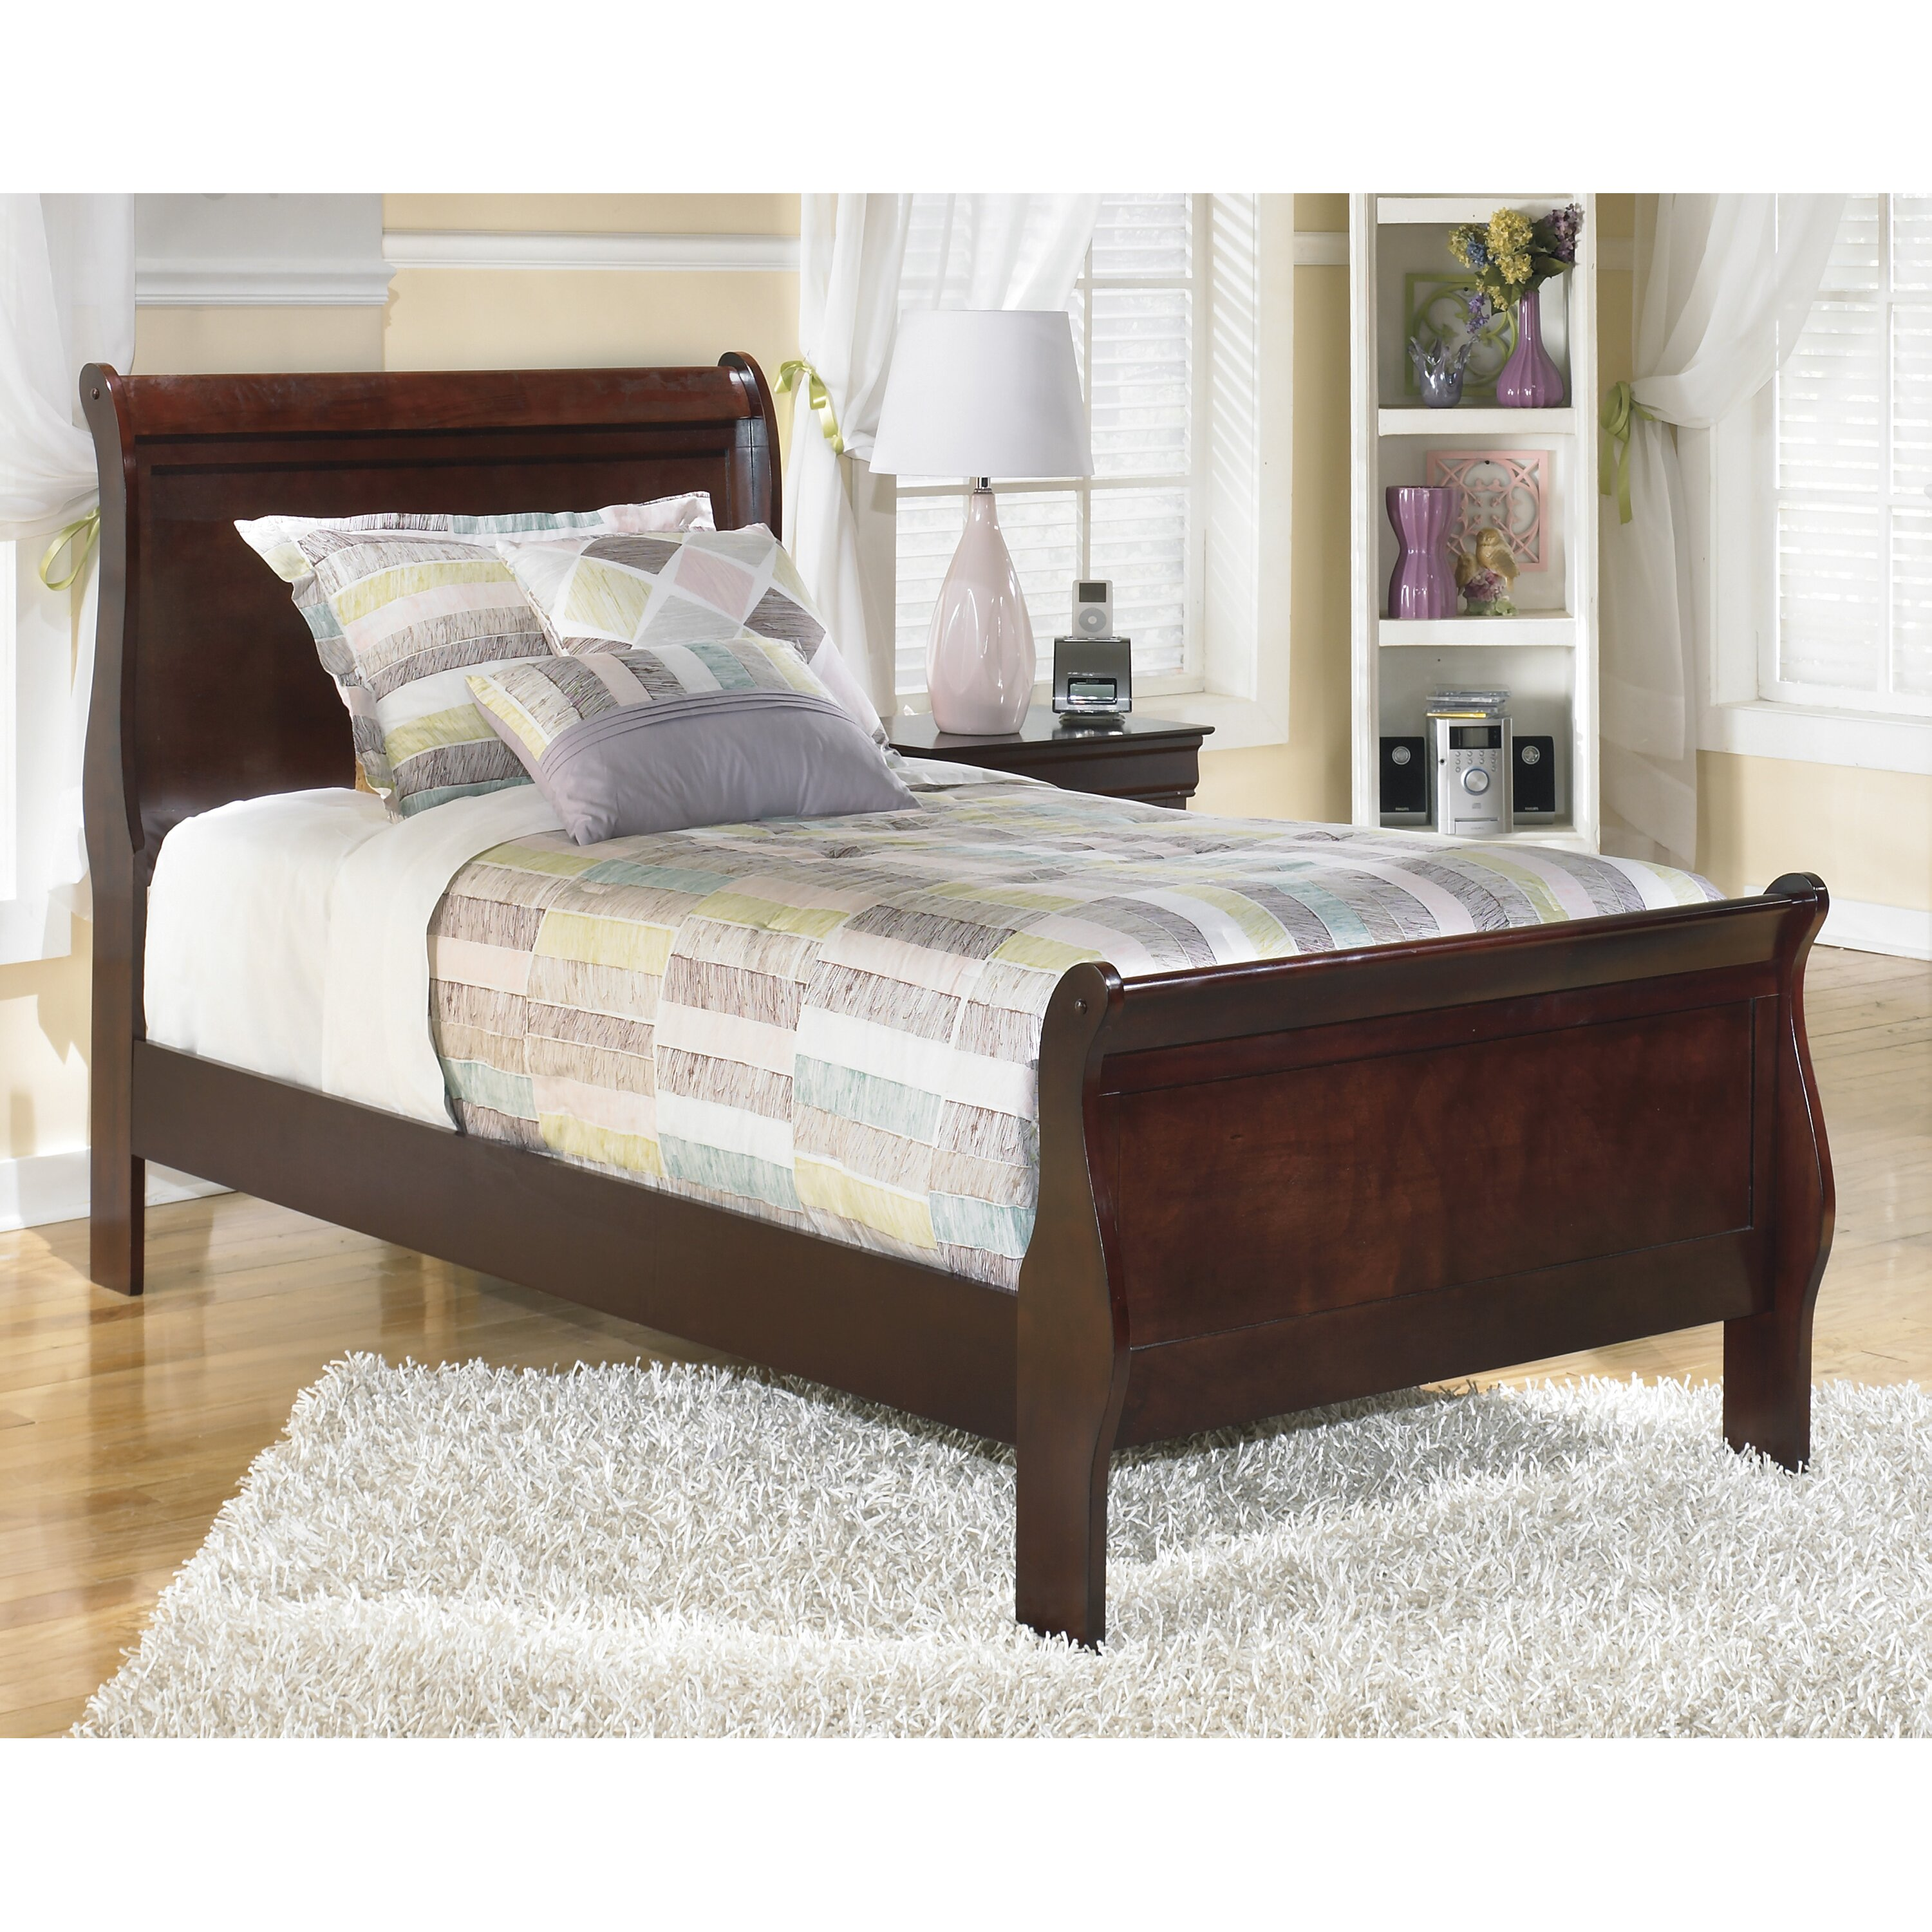 Signature design by ashley alisdair sleigh bed reviews for Double bed diwan set